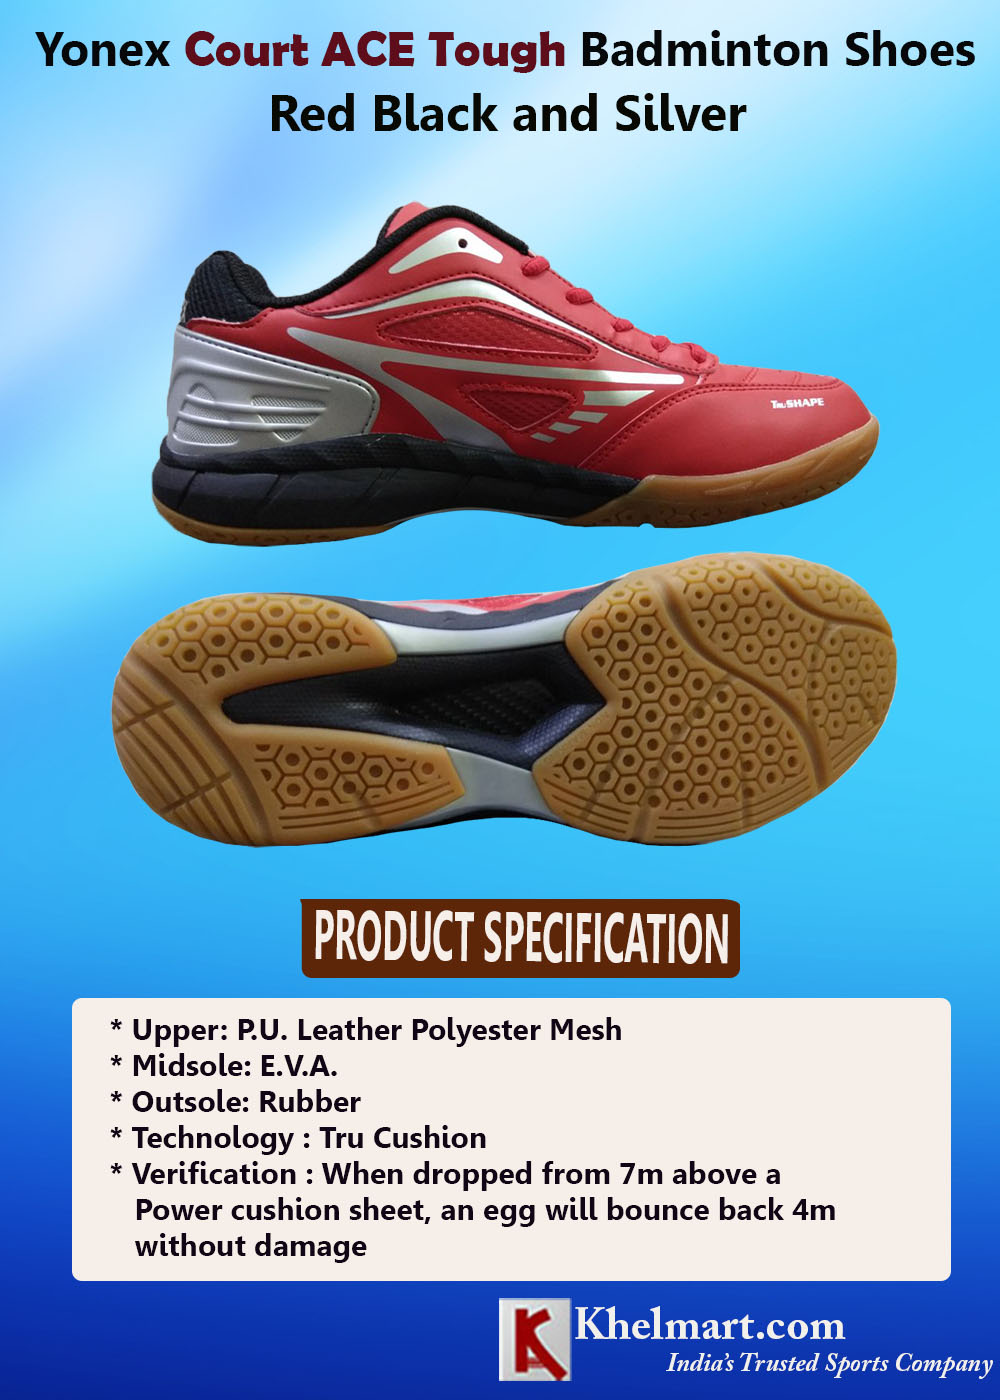 Yonex Court ACE Tough Badminton Shoes Red Black and Silver_6